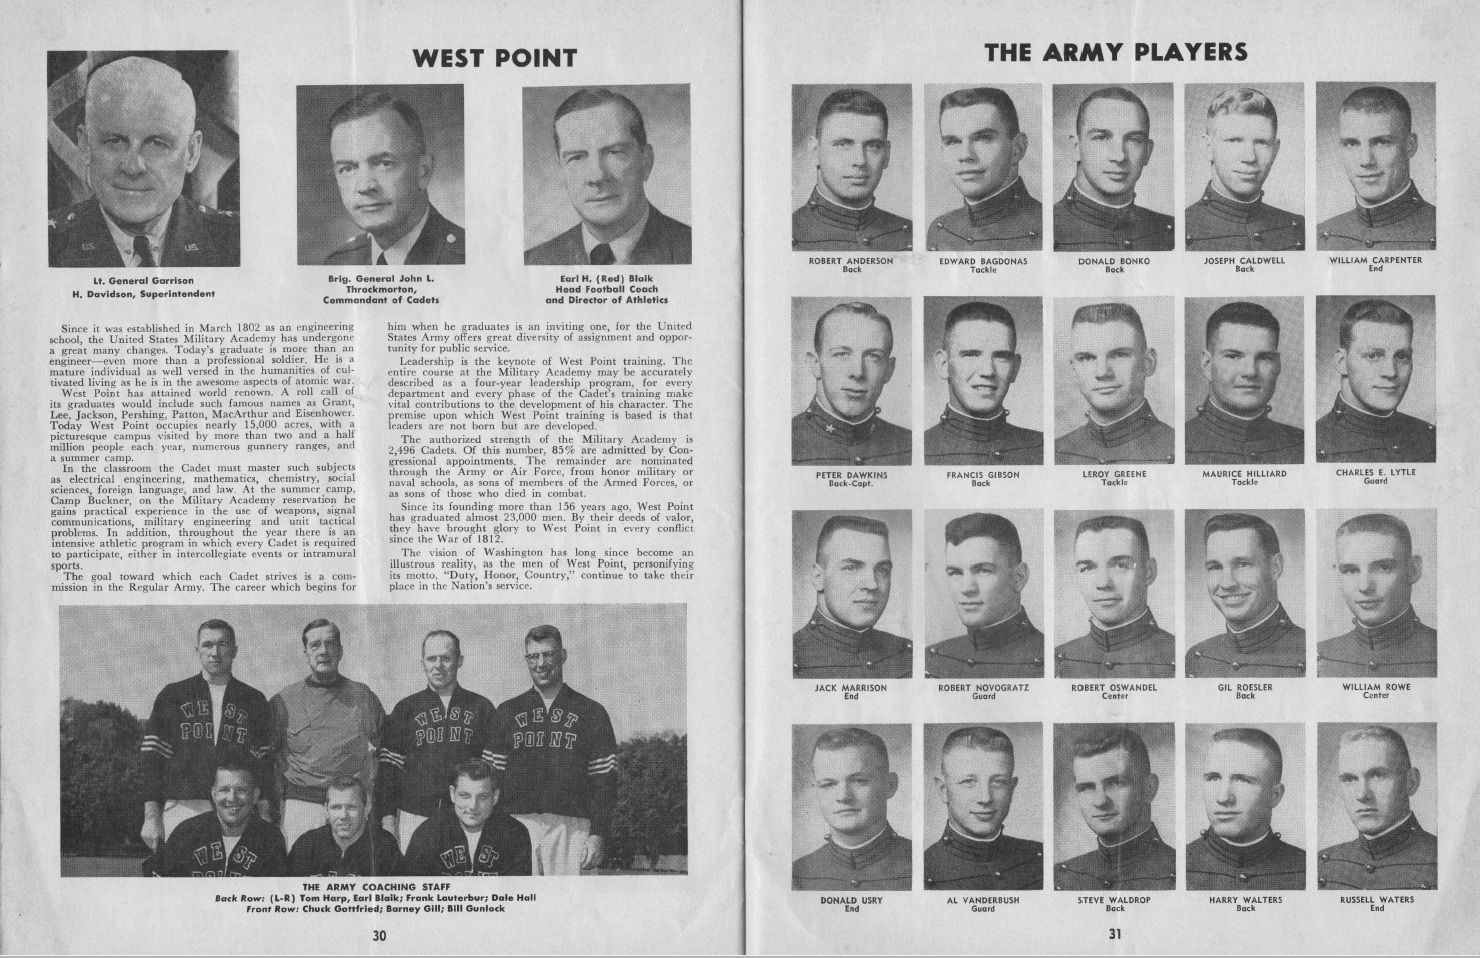 armyfb_1958_vsrice-program_p30-31_8nov1958